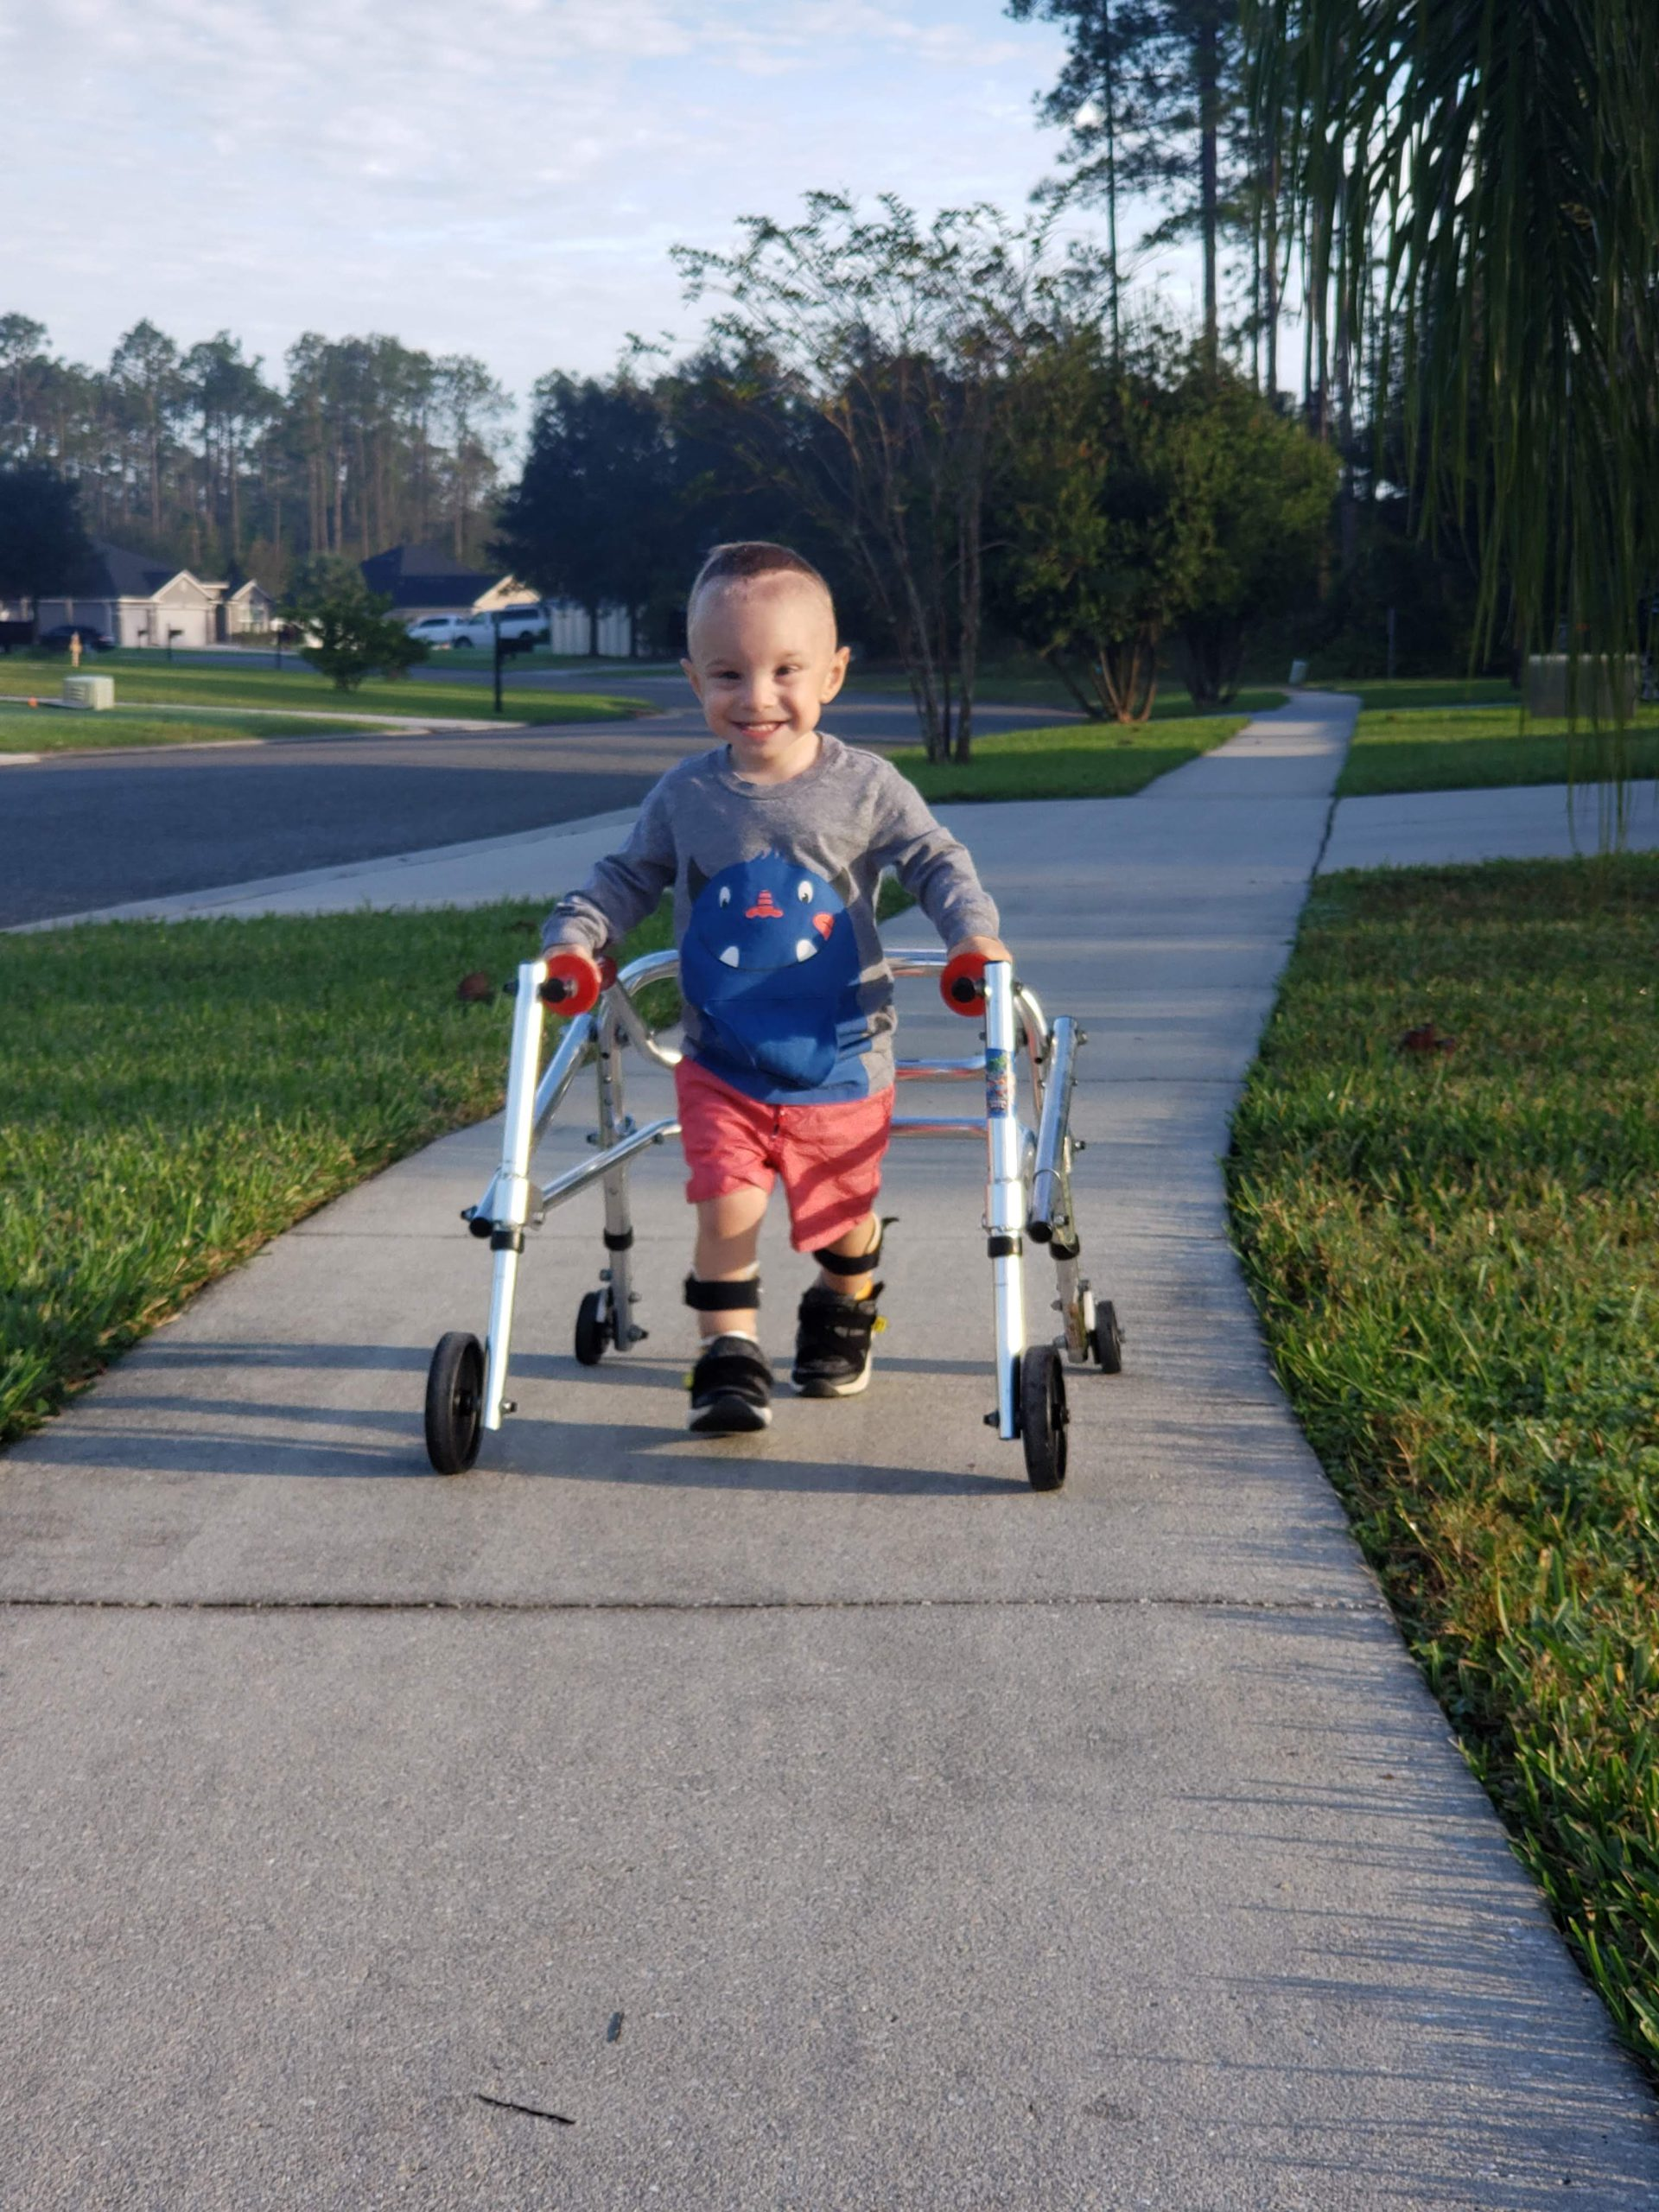 What No One Tells You About Raising a Child with Special Needs